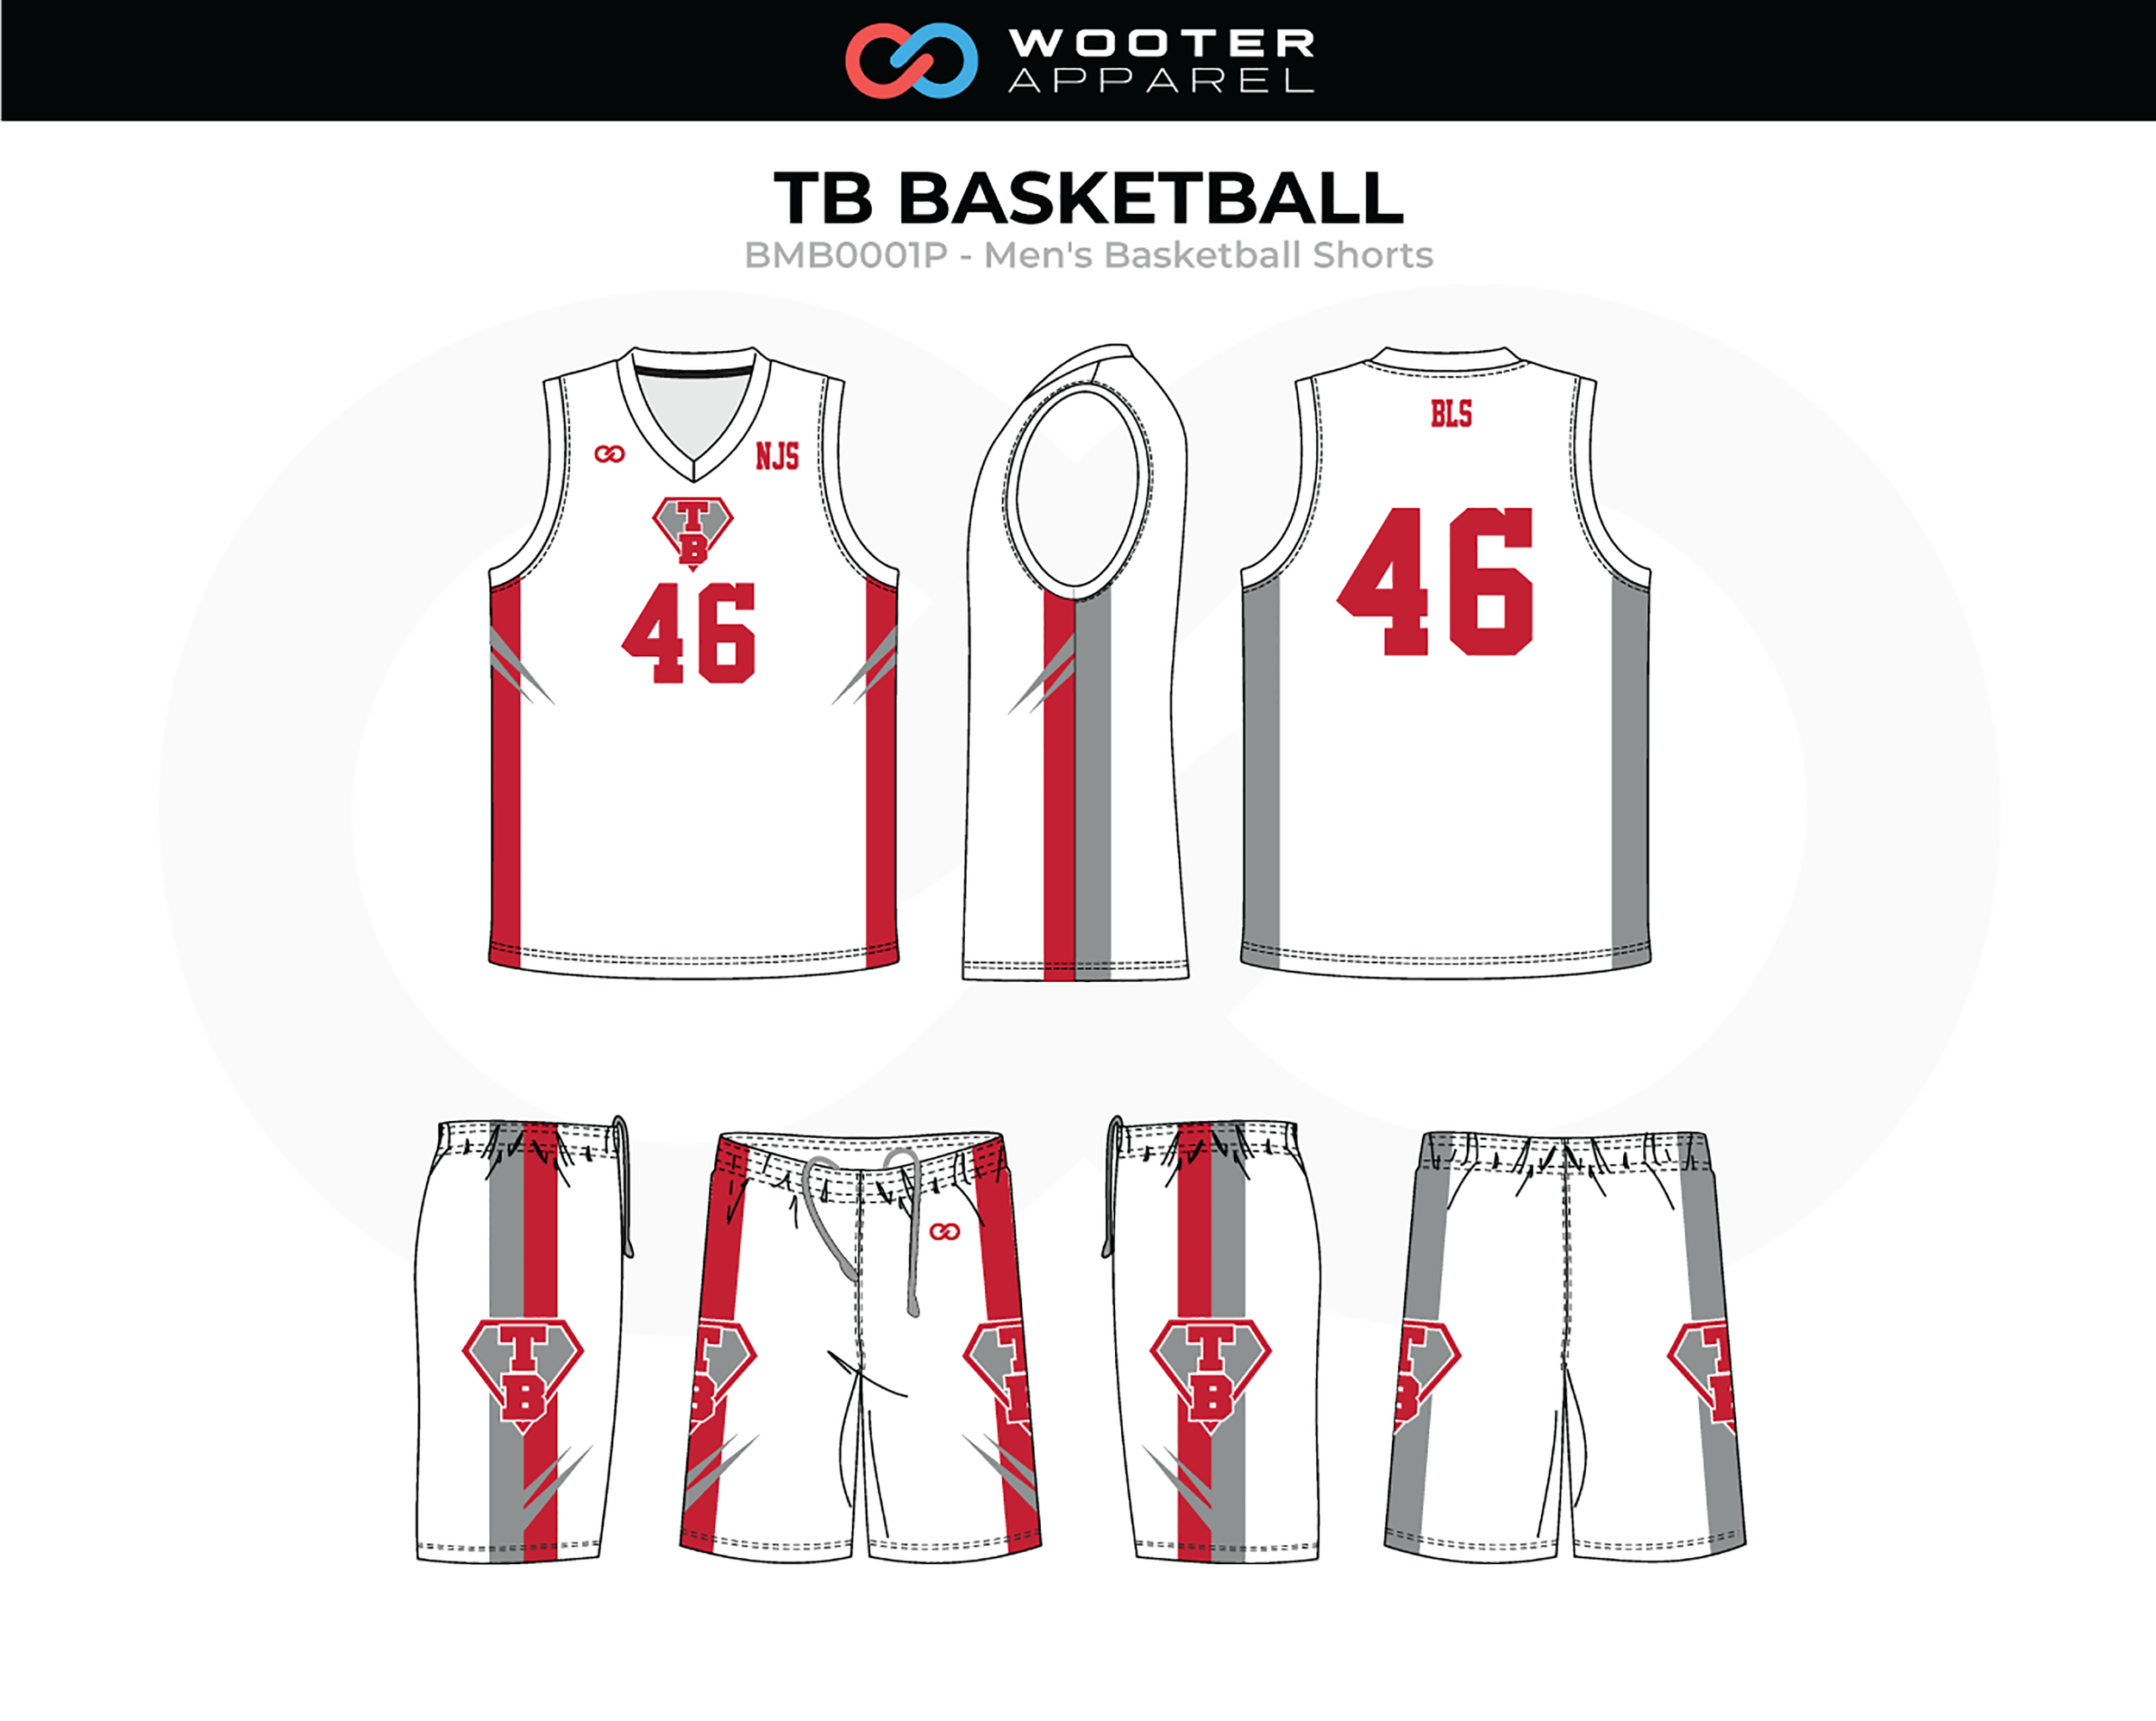 TB Red White Gray Basketball Uniform, Jersey and Shorts